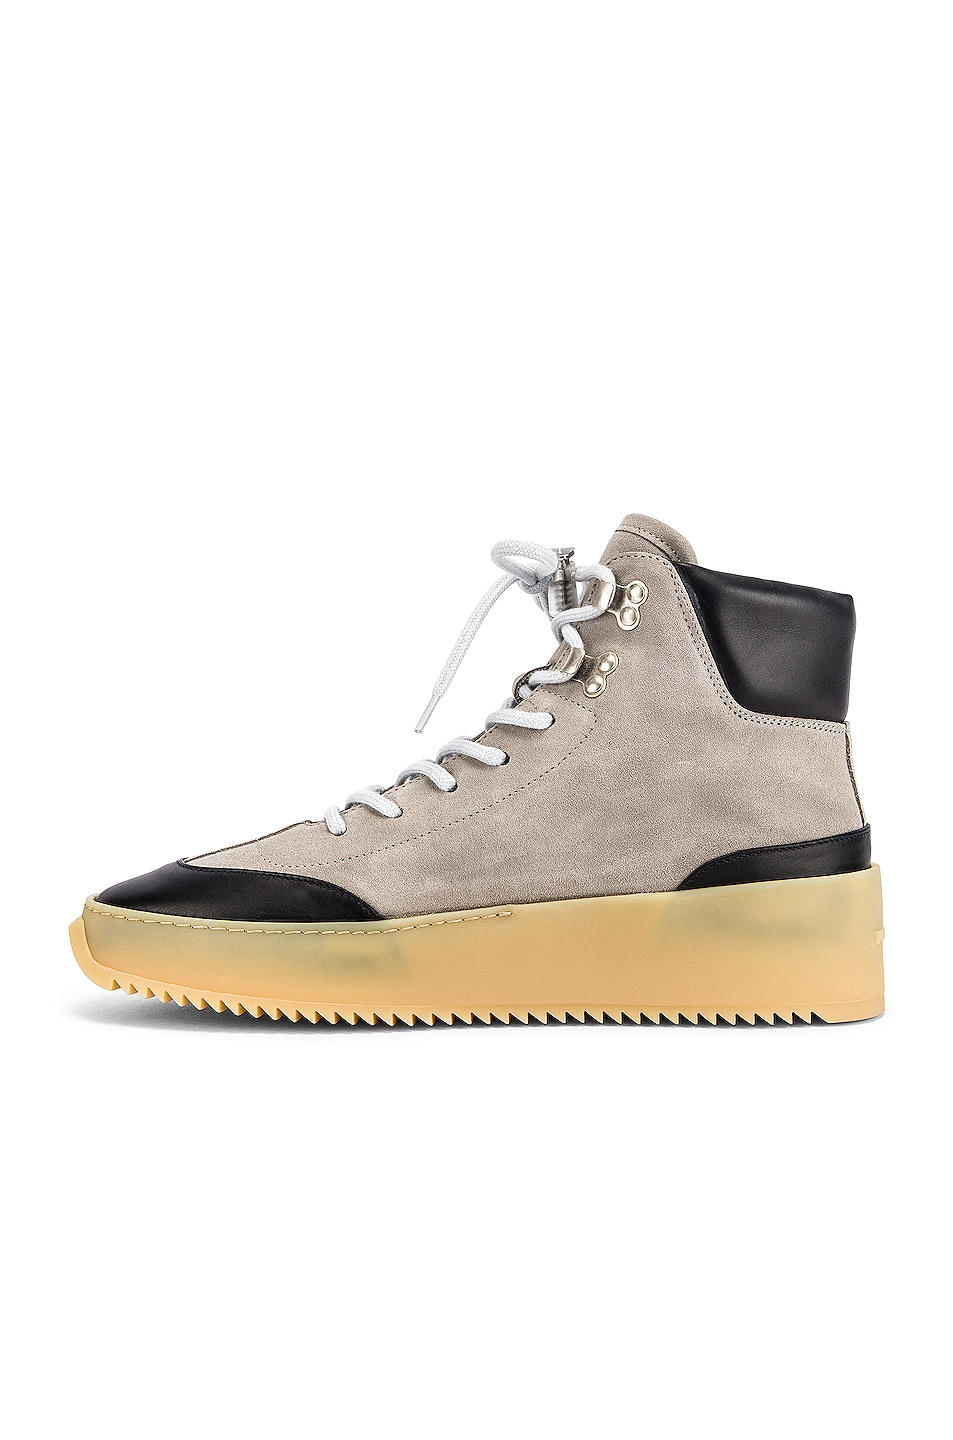 Image 5 of Fear of God 6th Collection Hiker in God Grey & Black